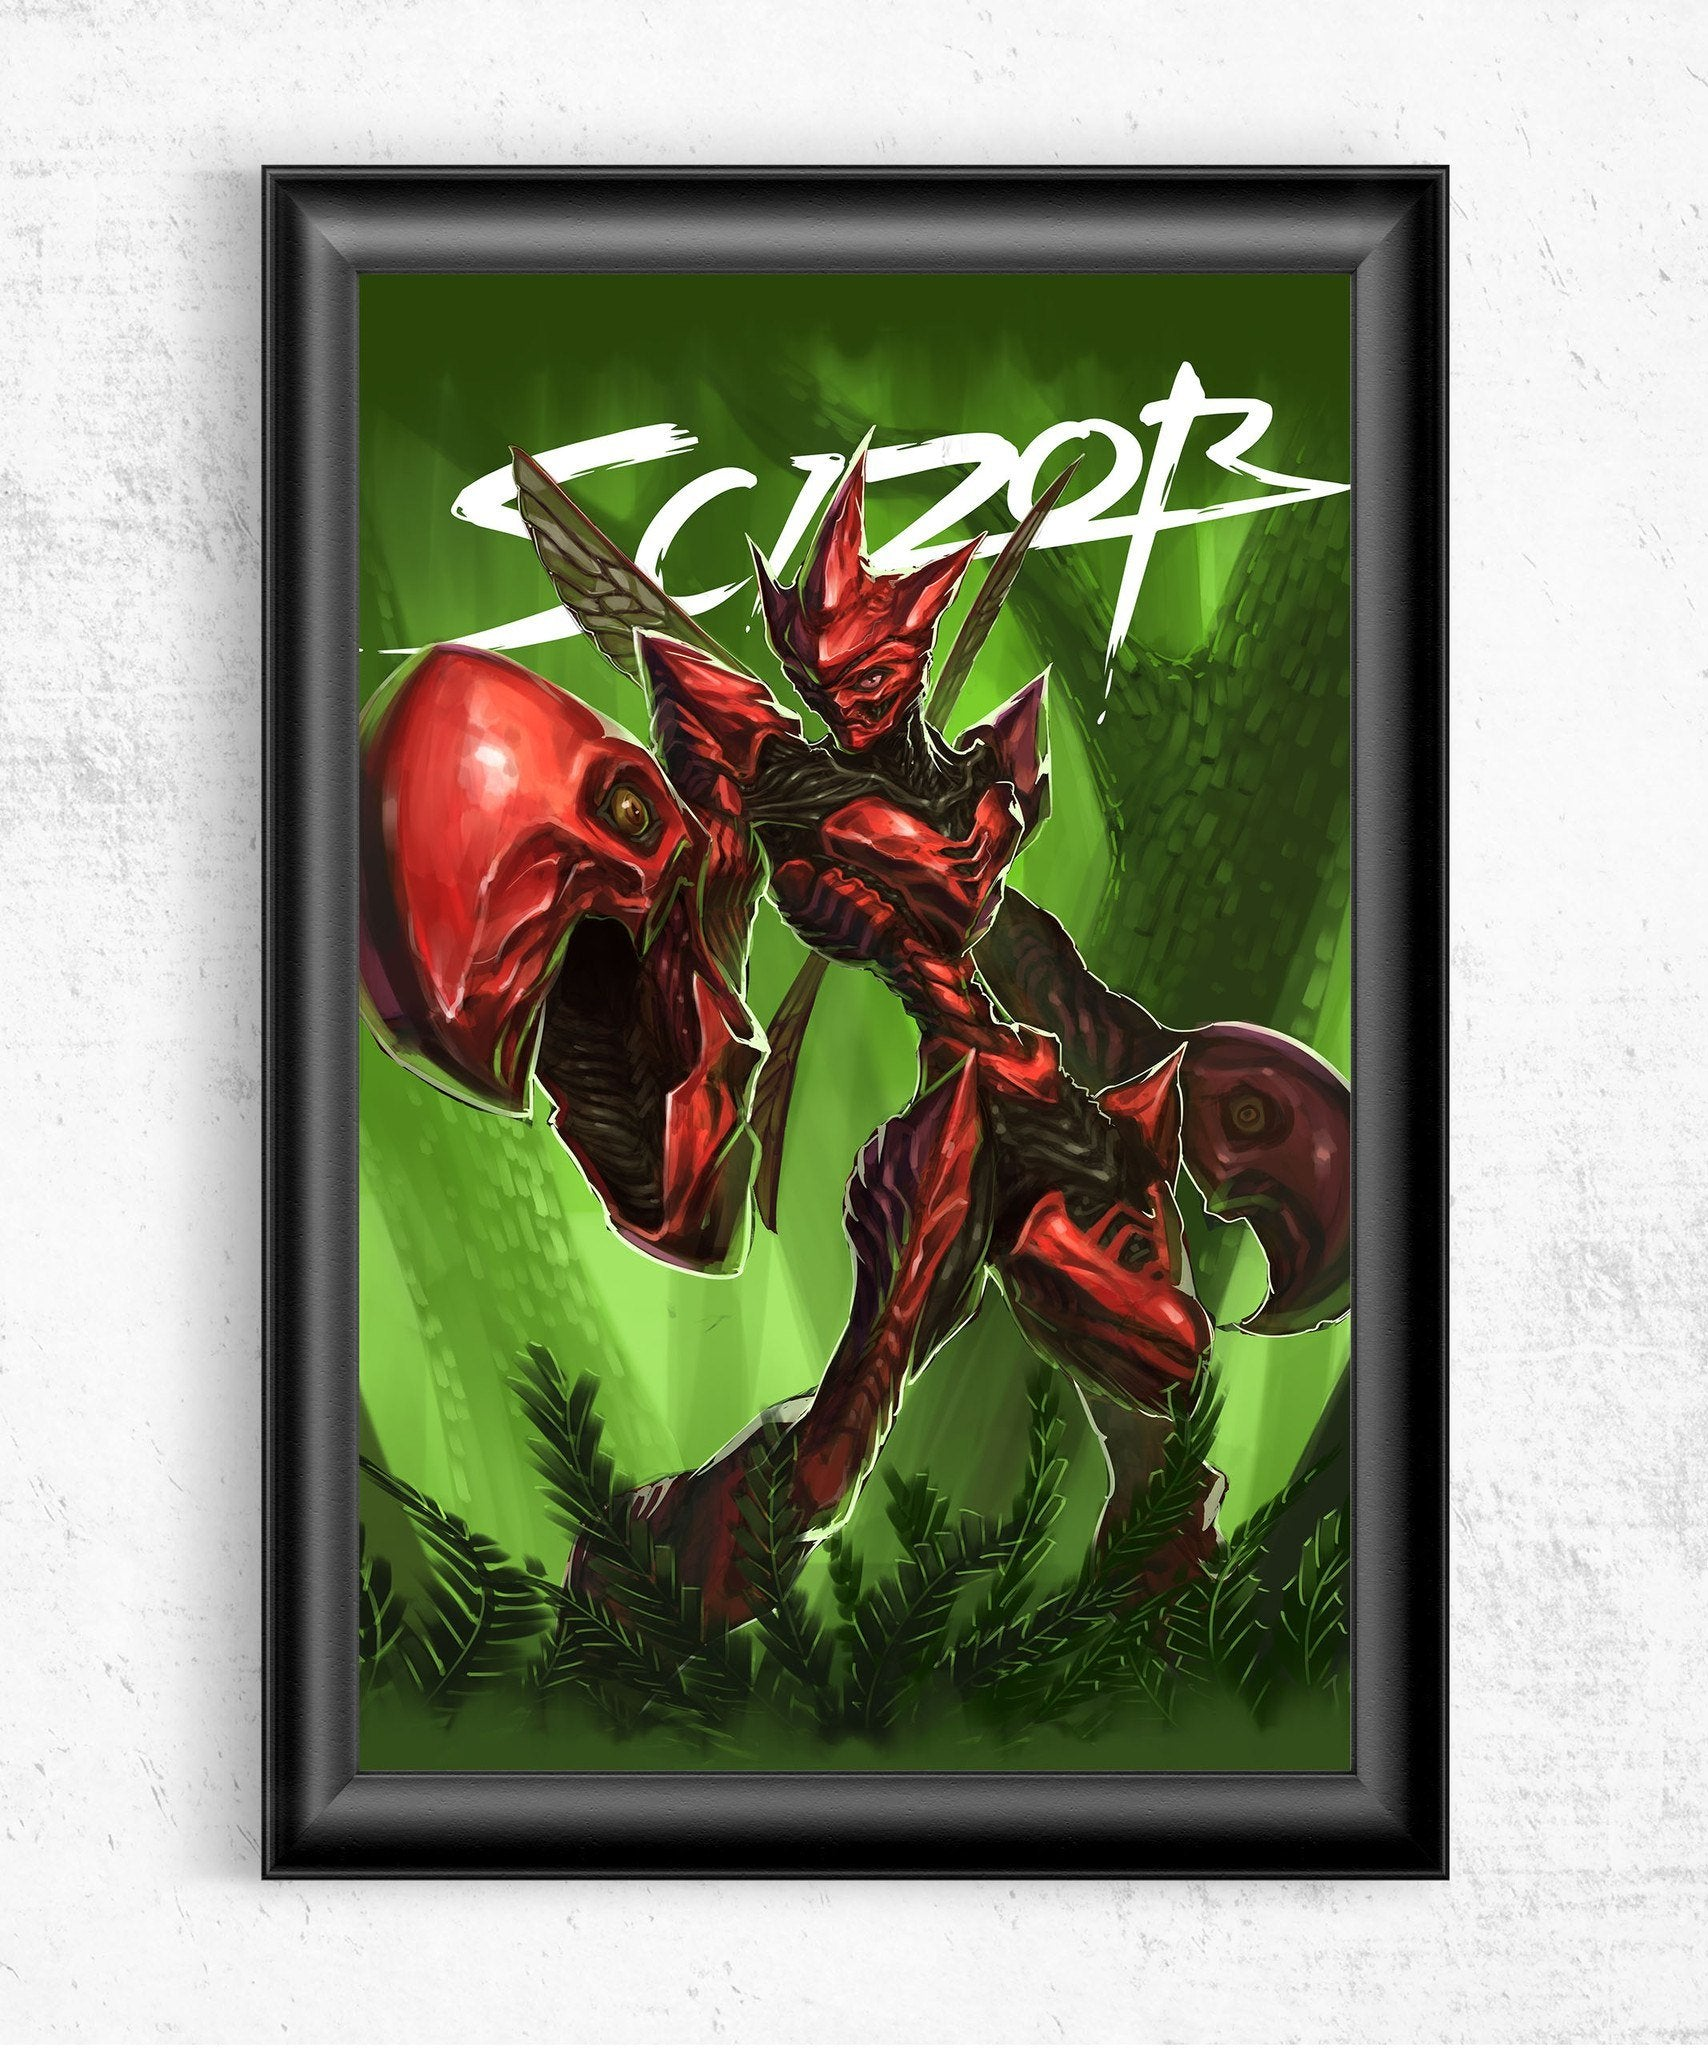 Scizor Posters by An-Atomic - Pixel Empire